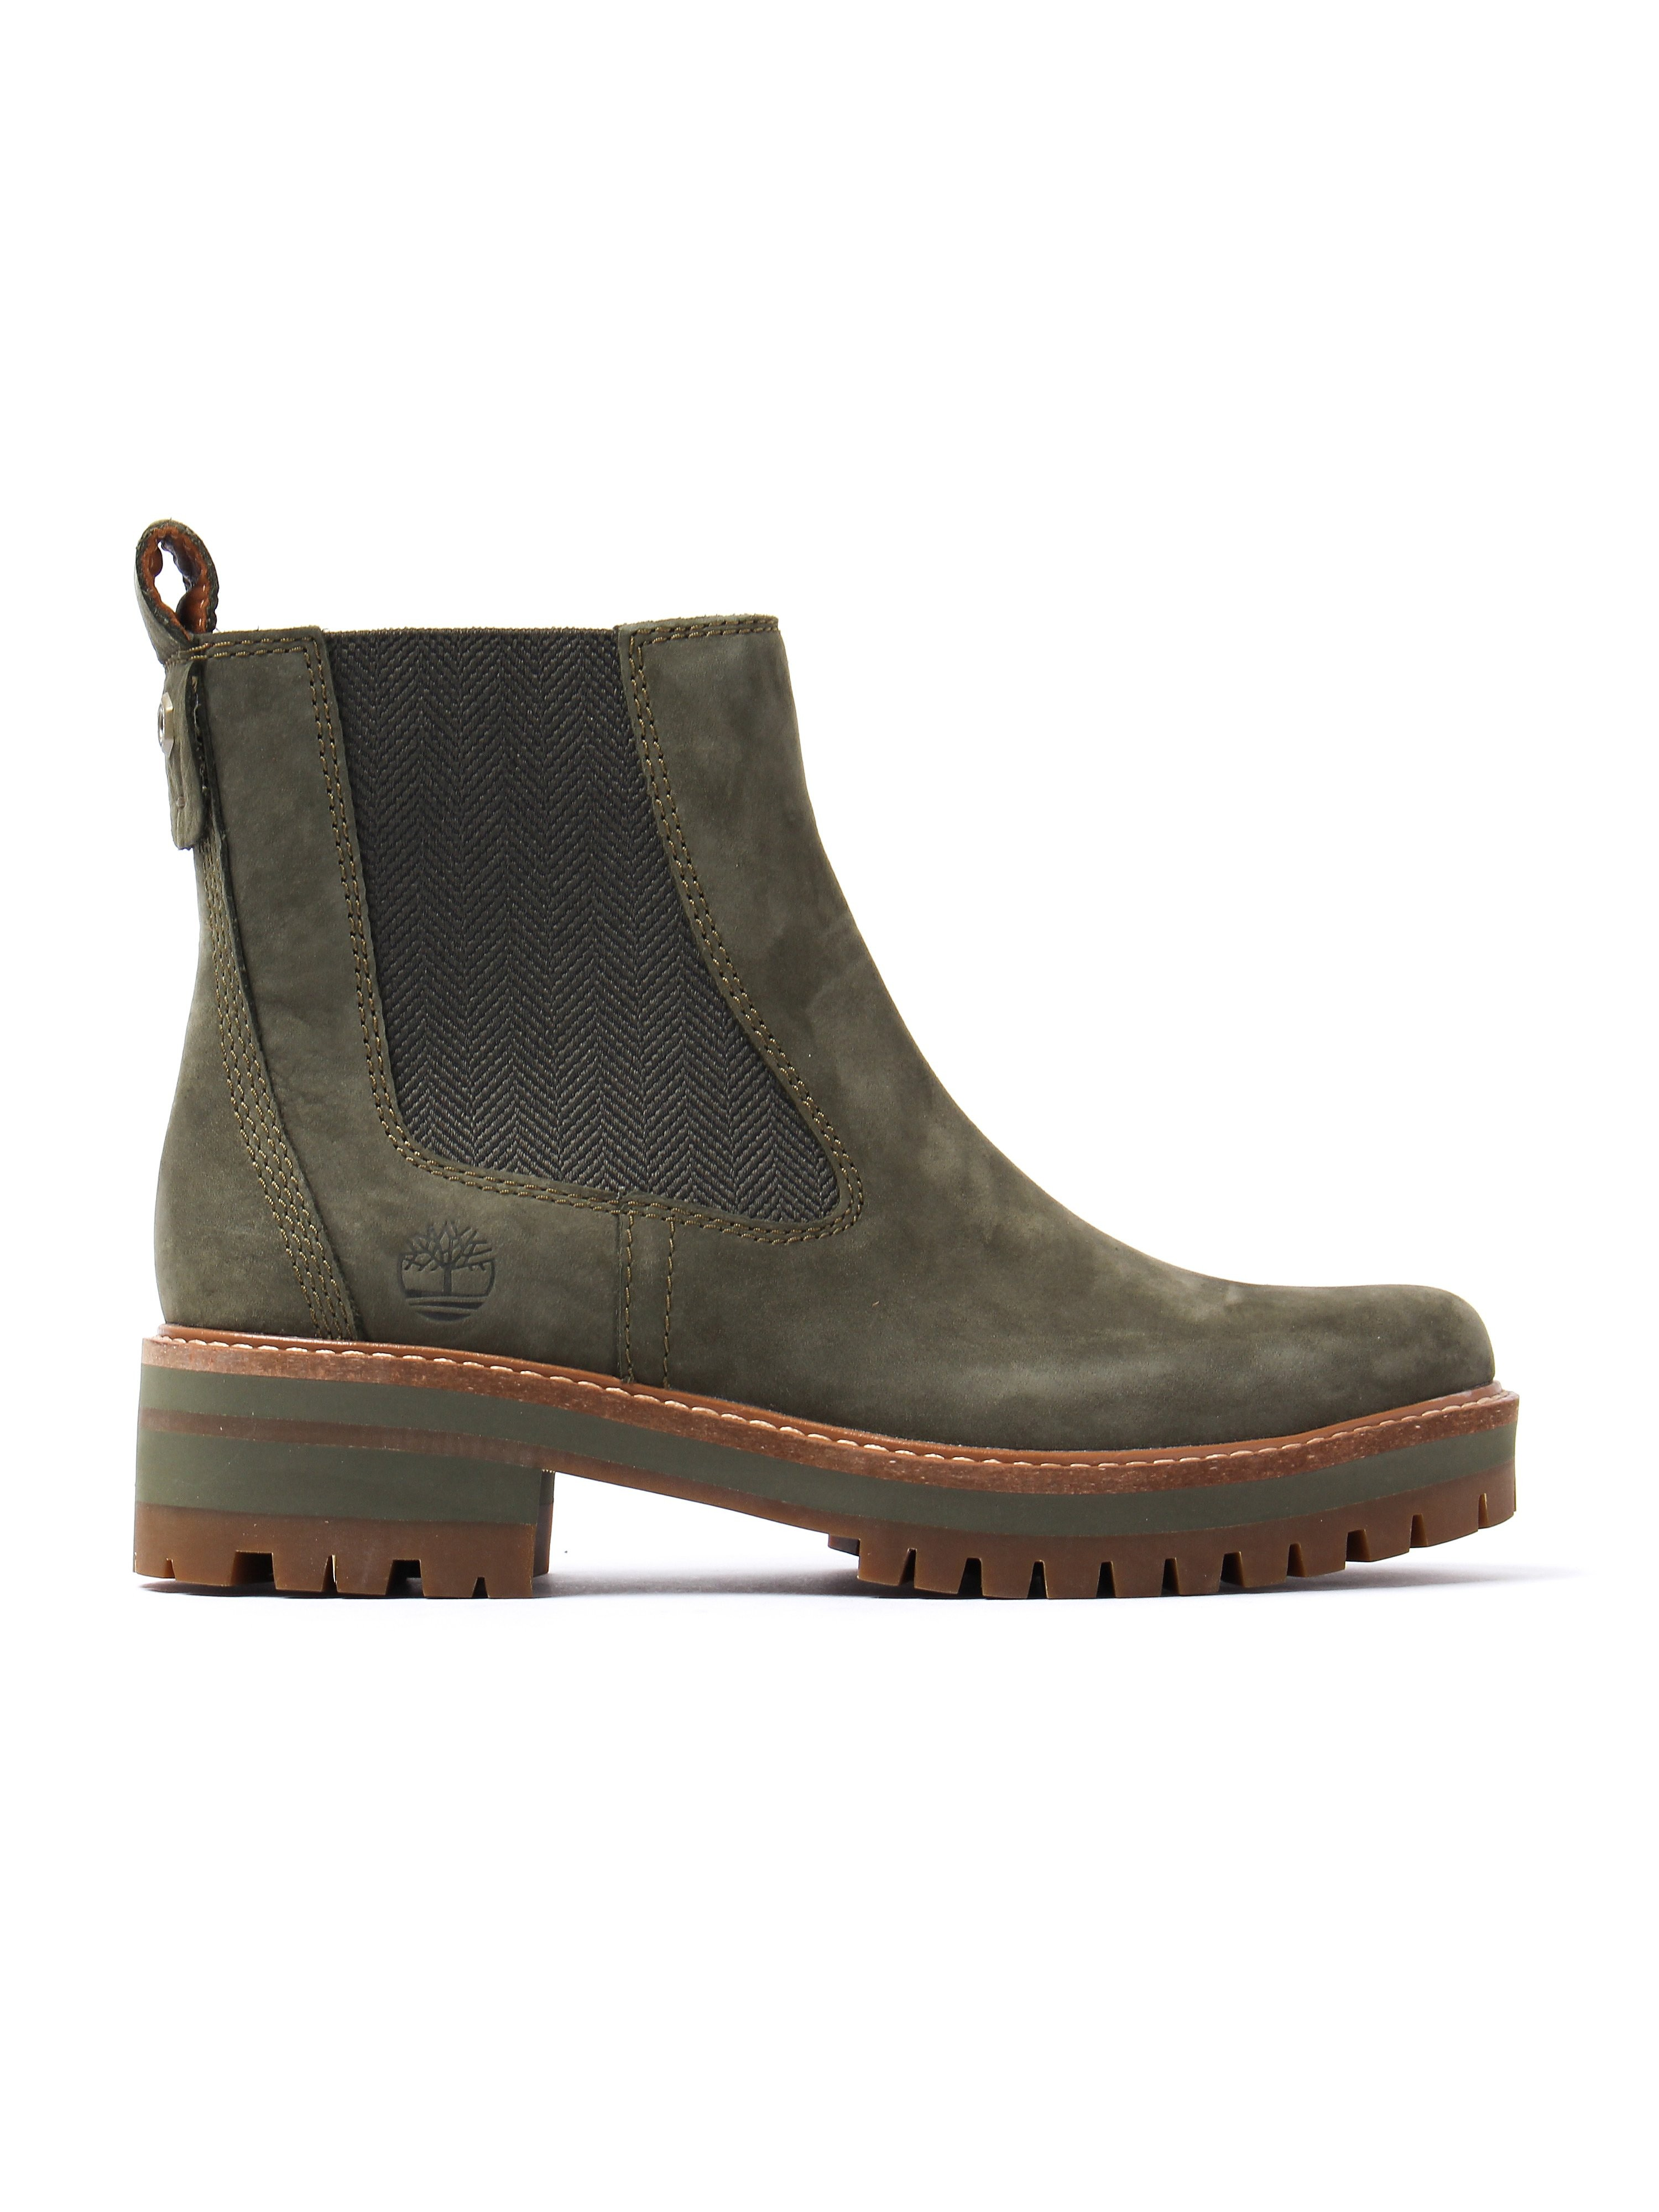 Timberland Women's Courmayeur Valley Chelsea Boots – Olive